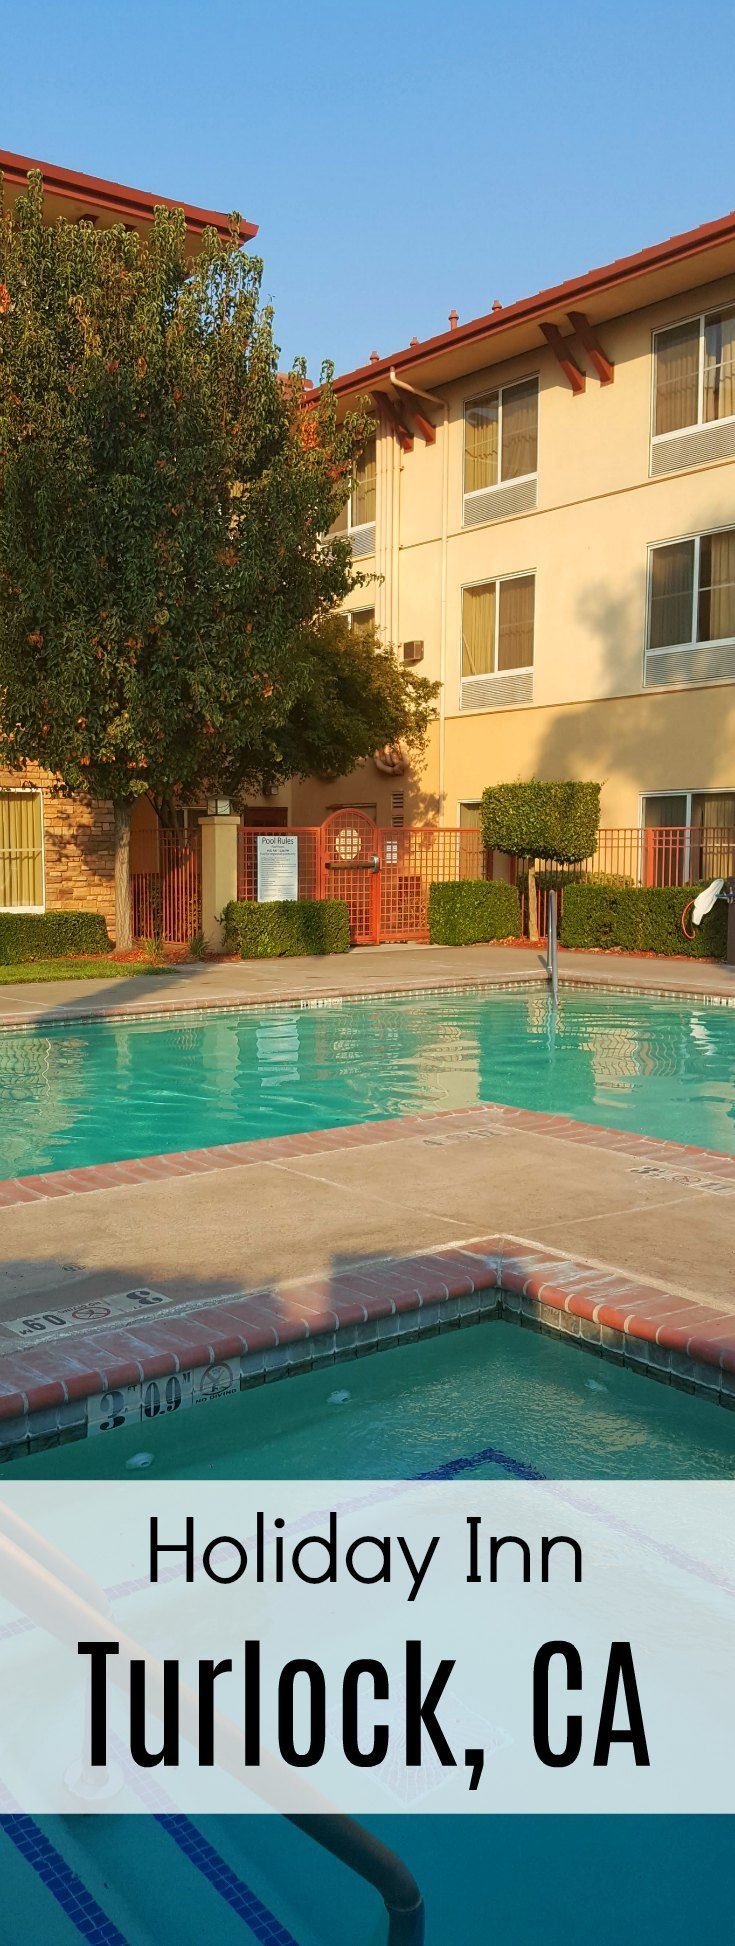 Holiday Inn Express in Turlock, California - Where to stay when you travel on Highway 99 in California's San Joaquin Valley